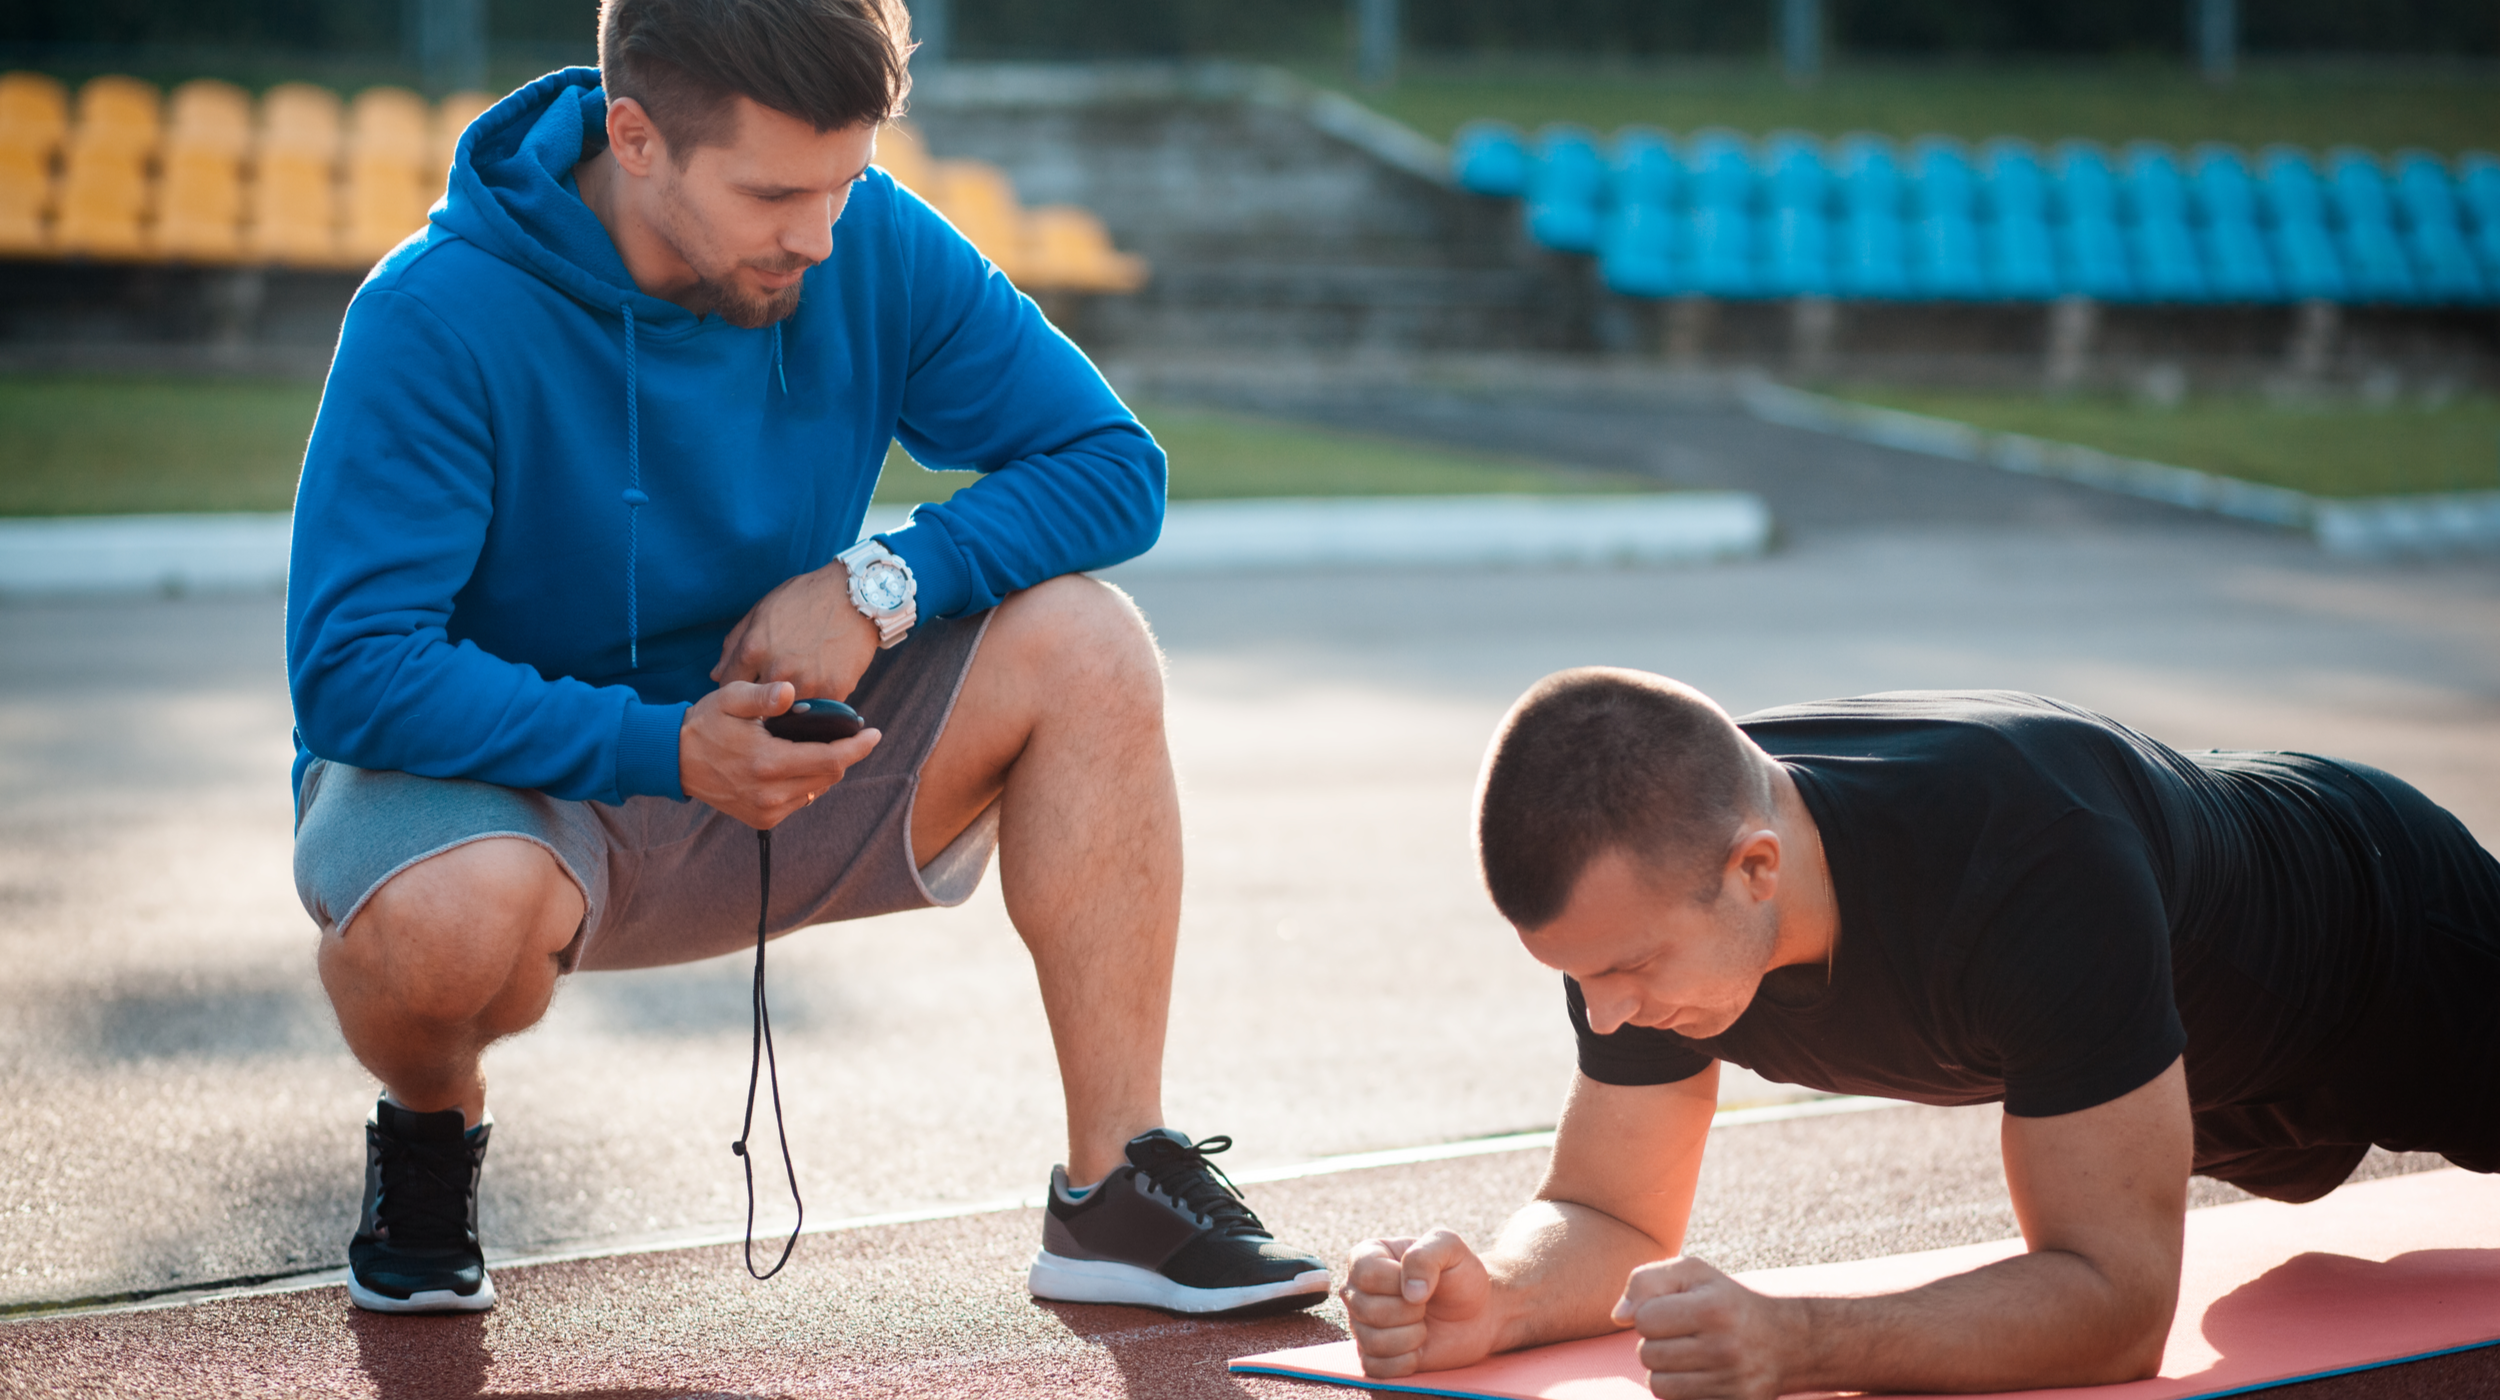 What Certifications do all Personal Trainers Need?